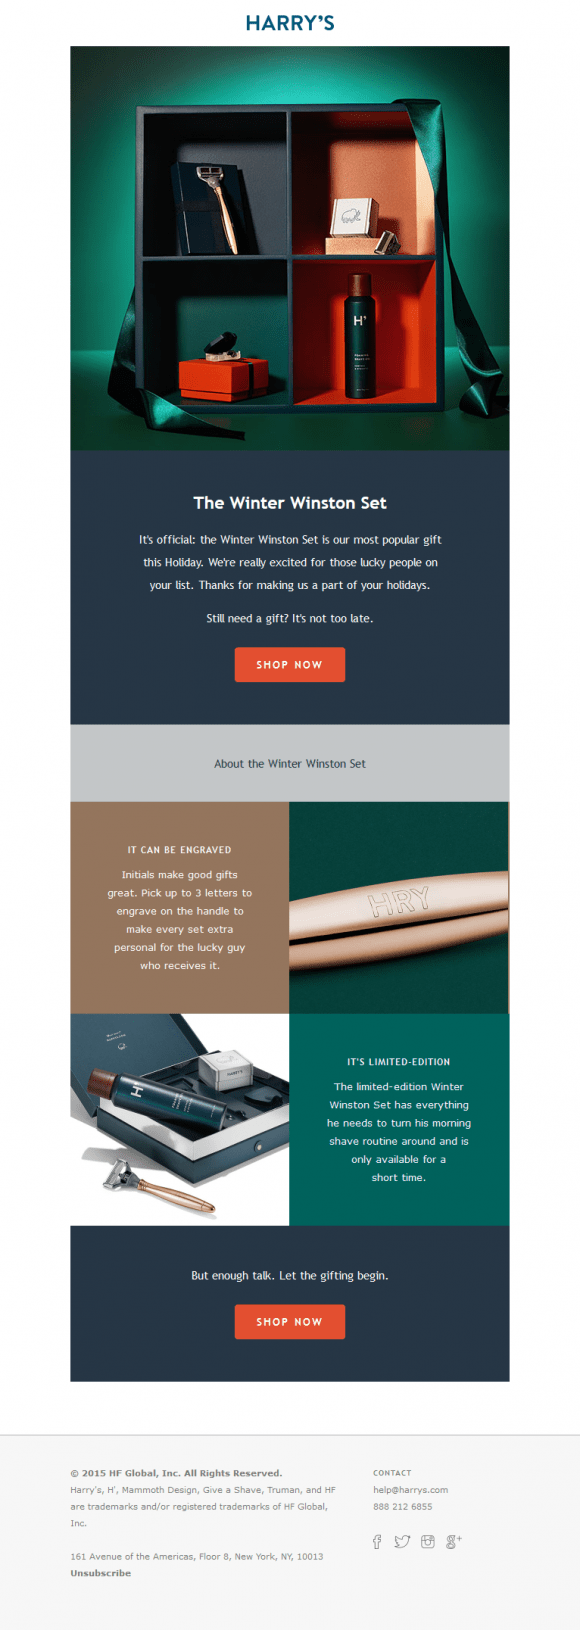 harrys-email-example.png